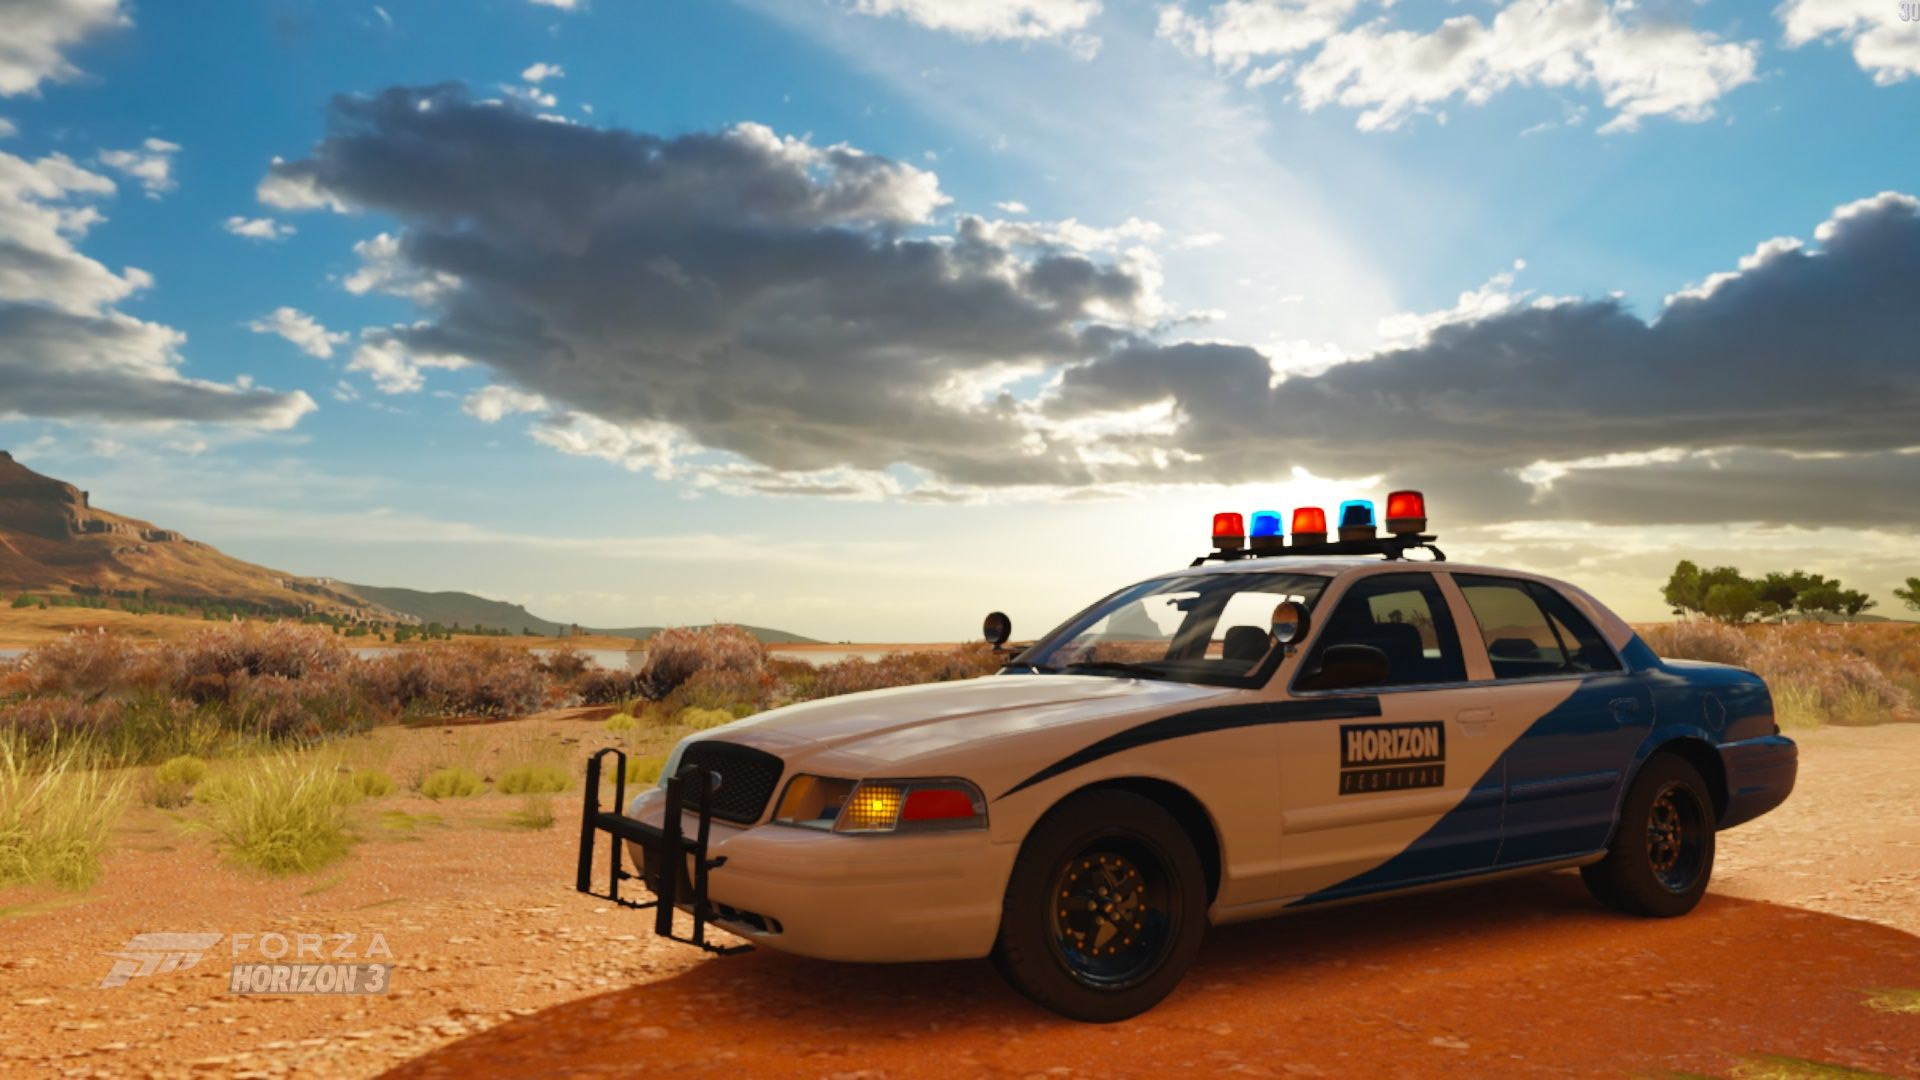 Crown Vic Car Wallpaper 2010 Ford Crown Victoria Police Interceptor Fh3